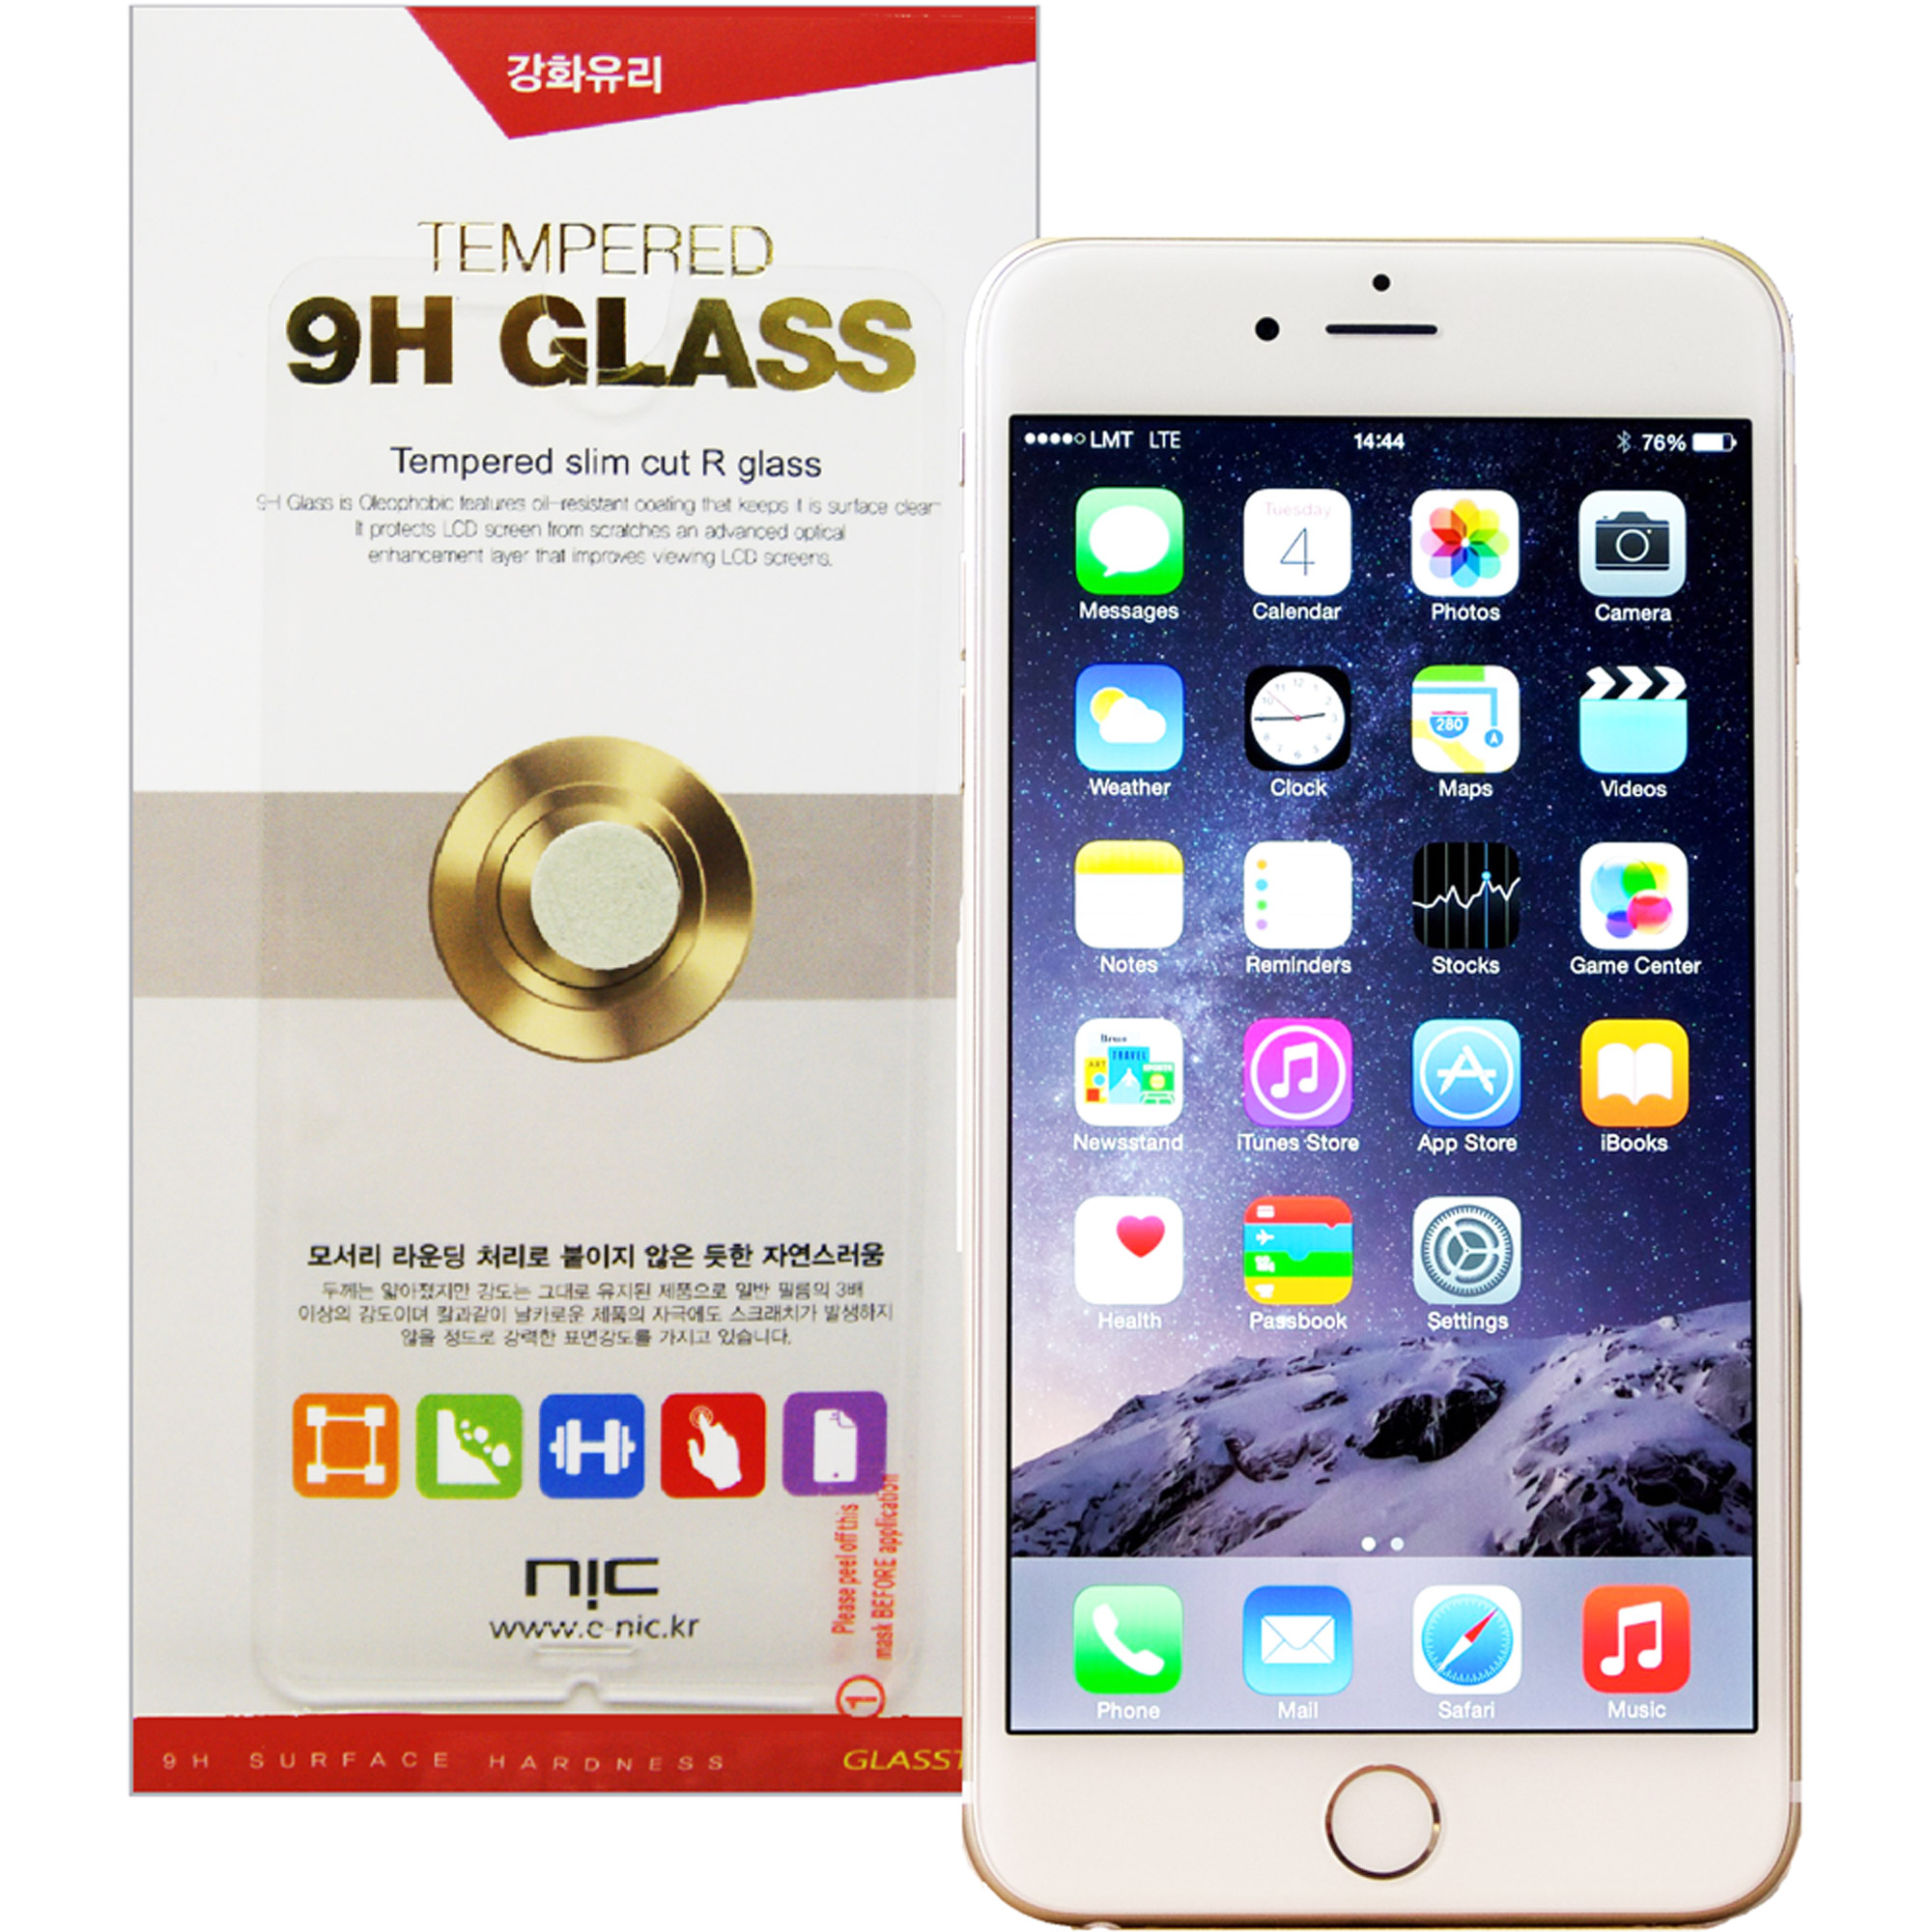 NIC Glasstic 9H Tempered Glass Screen Protector for Apple iPhone 6 Plus